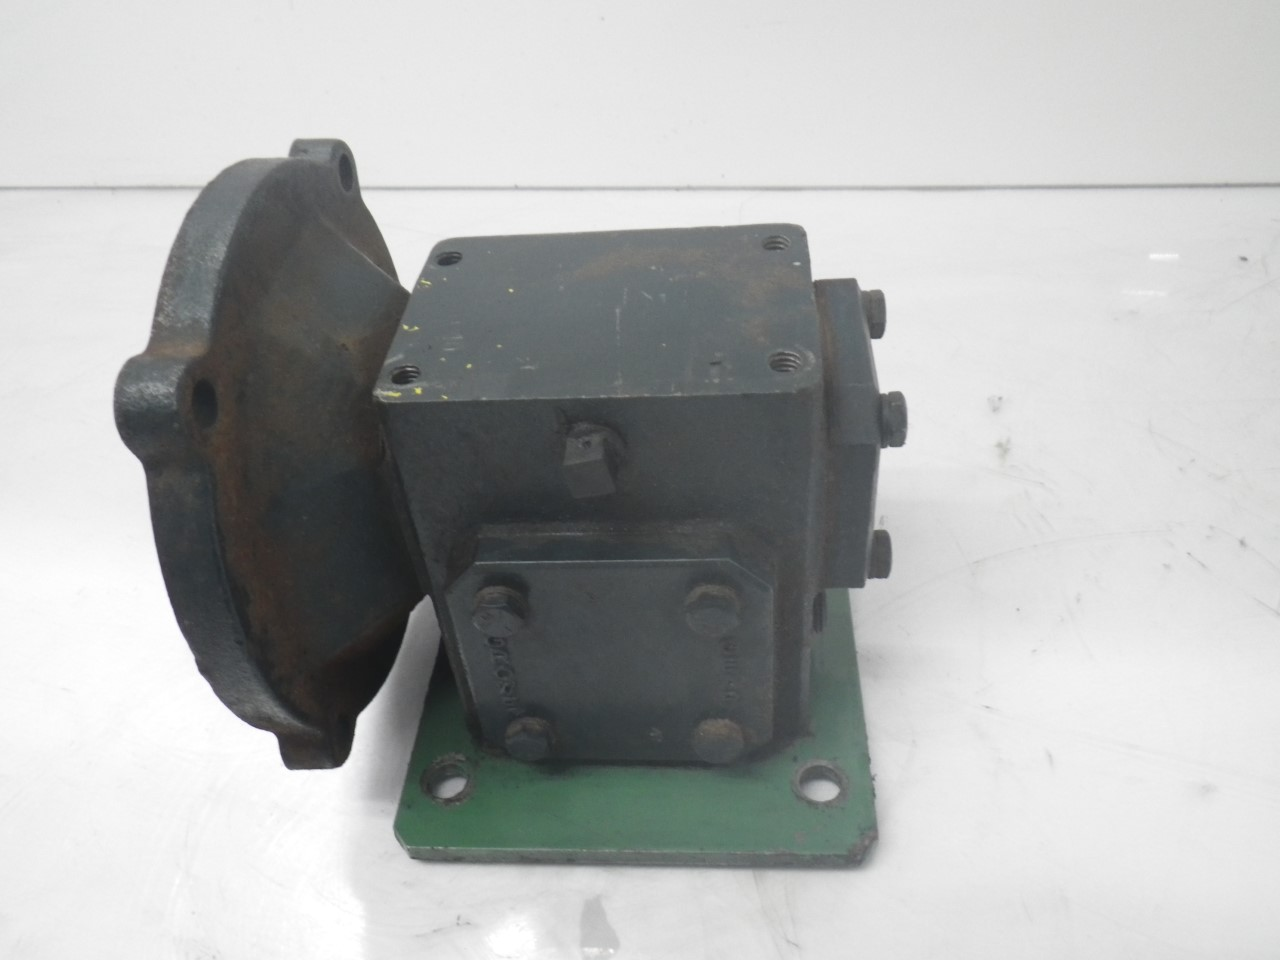 IMGP6972M01133-2 Flexaline GearBox 0.260 inhp, ratio140 motor frame56c (Used Tested) (5)